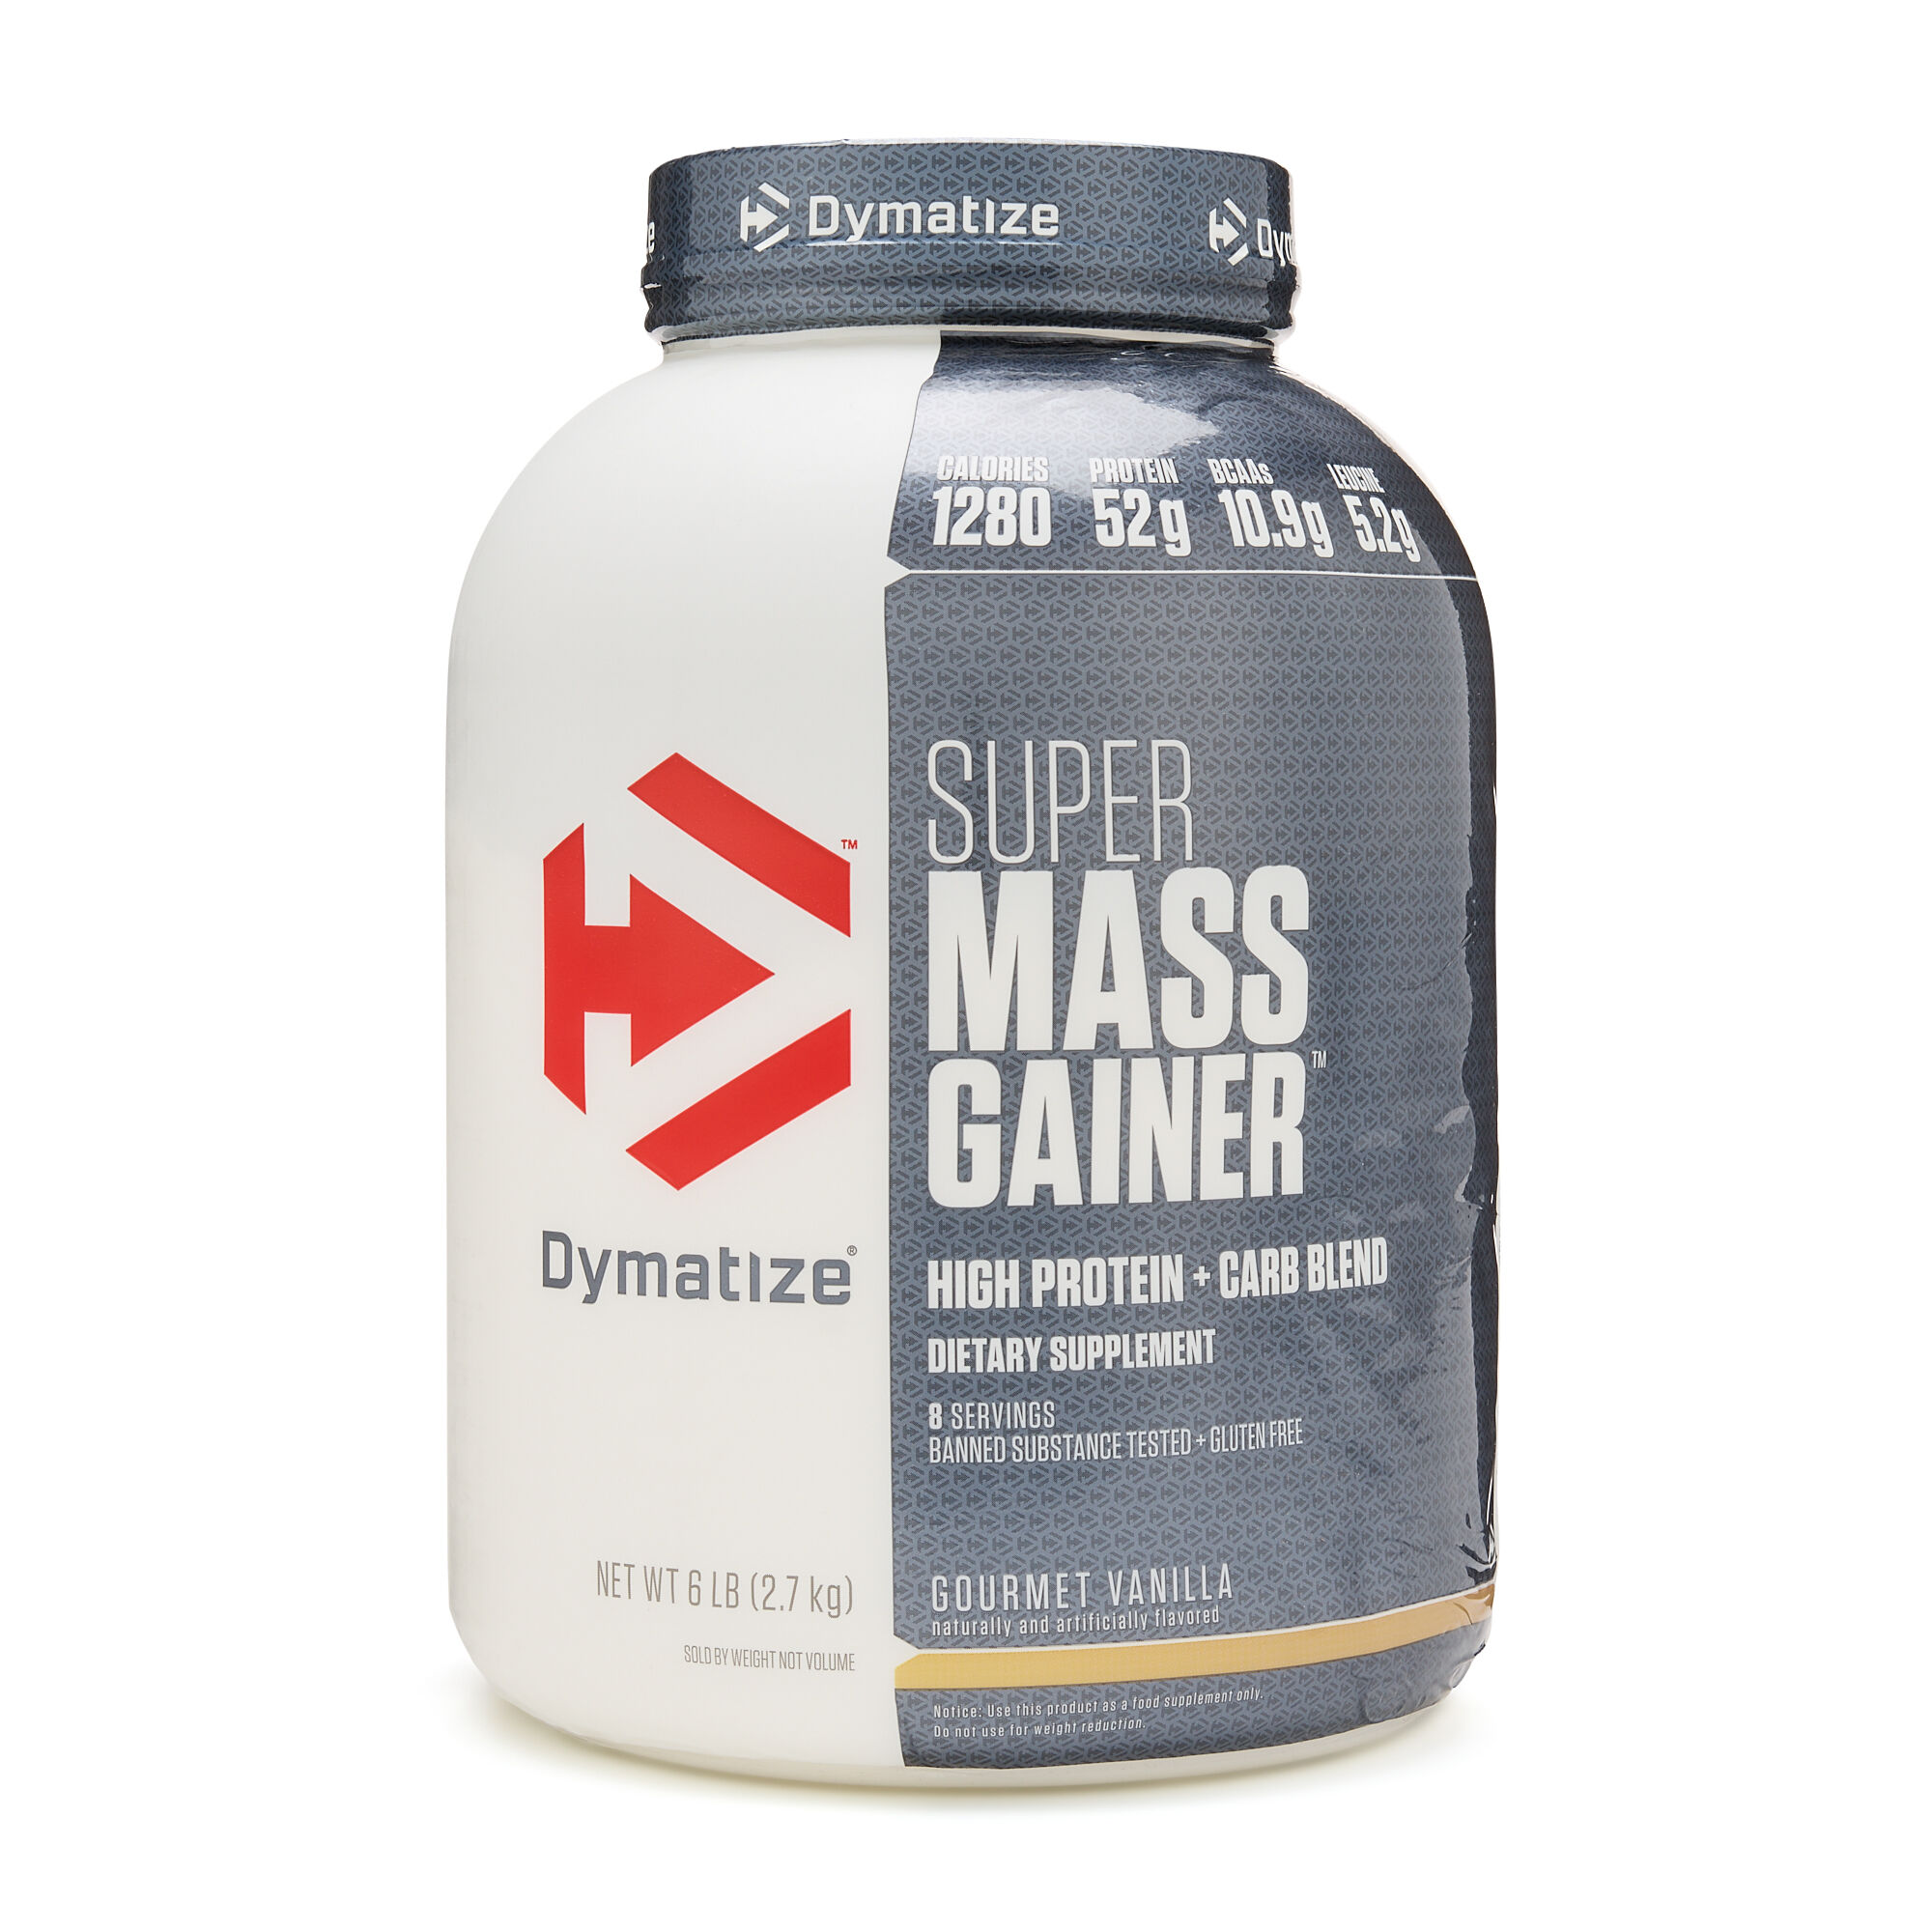 Gainer or protein 65